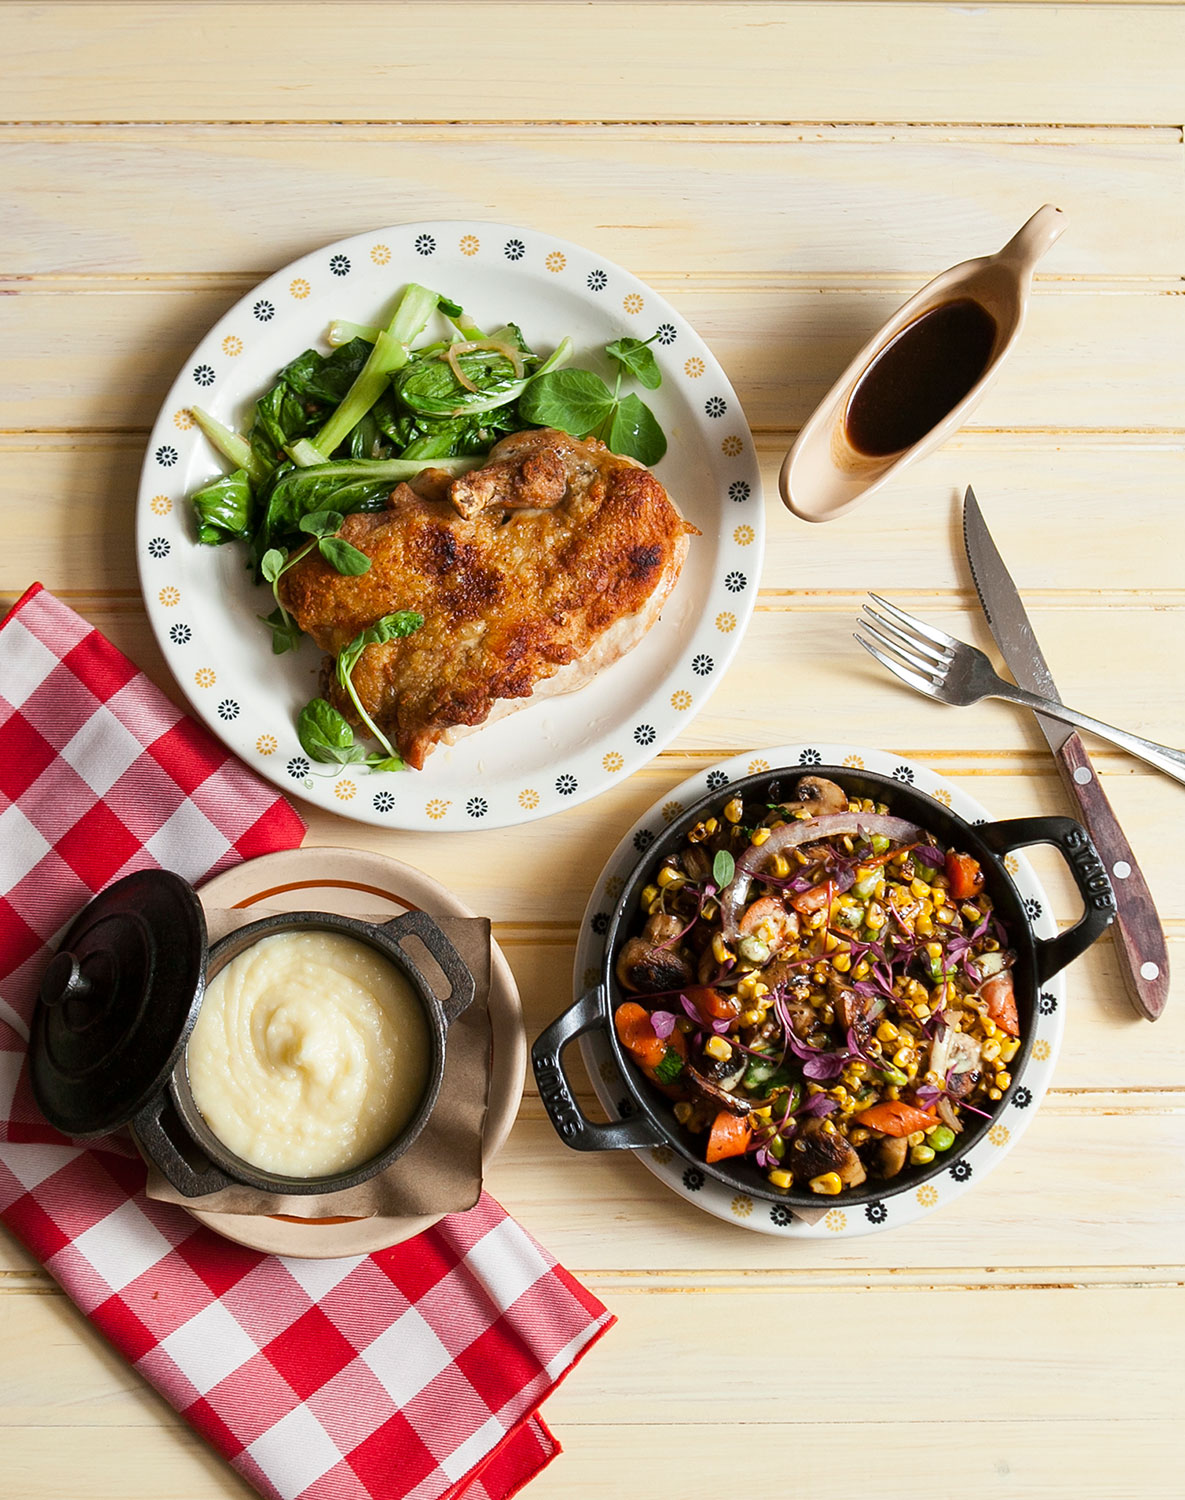 Pan-fried chicken, with Chinese greens, mashed potatoes, and succotash. (Samira Bouaou/Epoch Times)